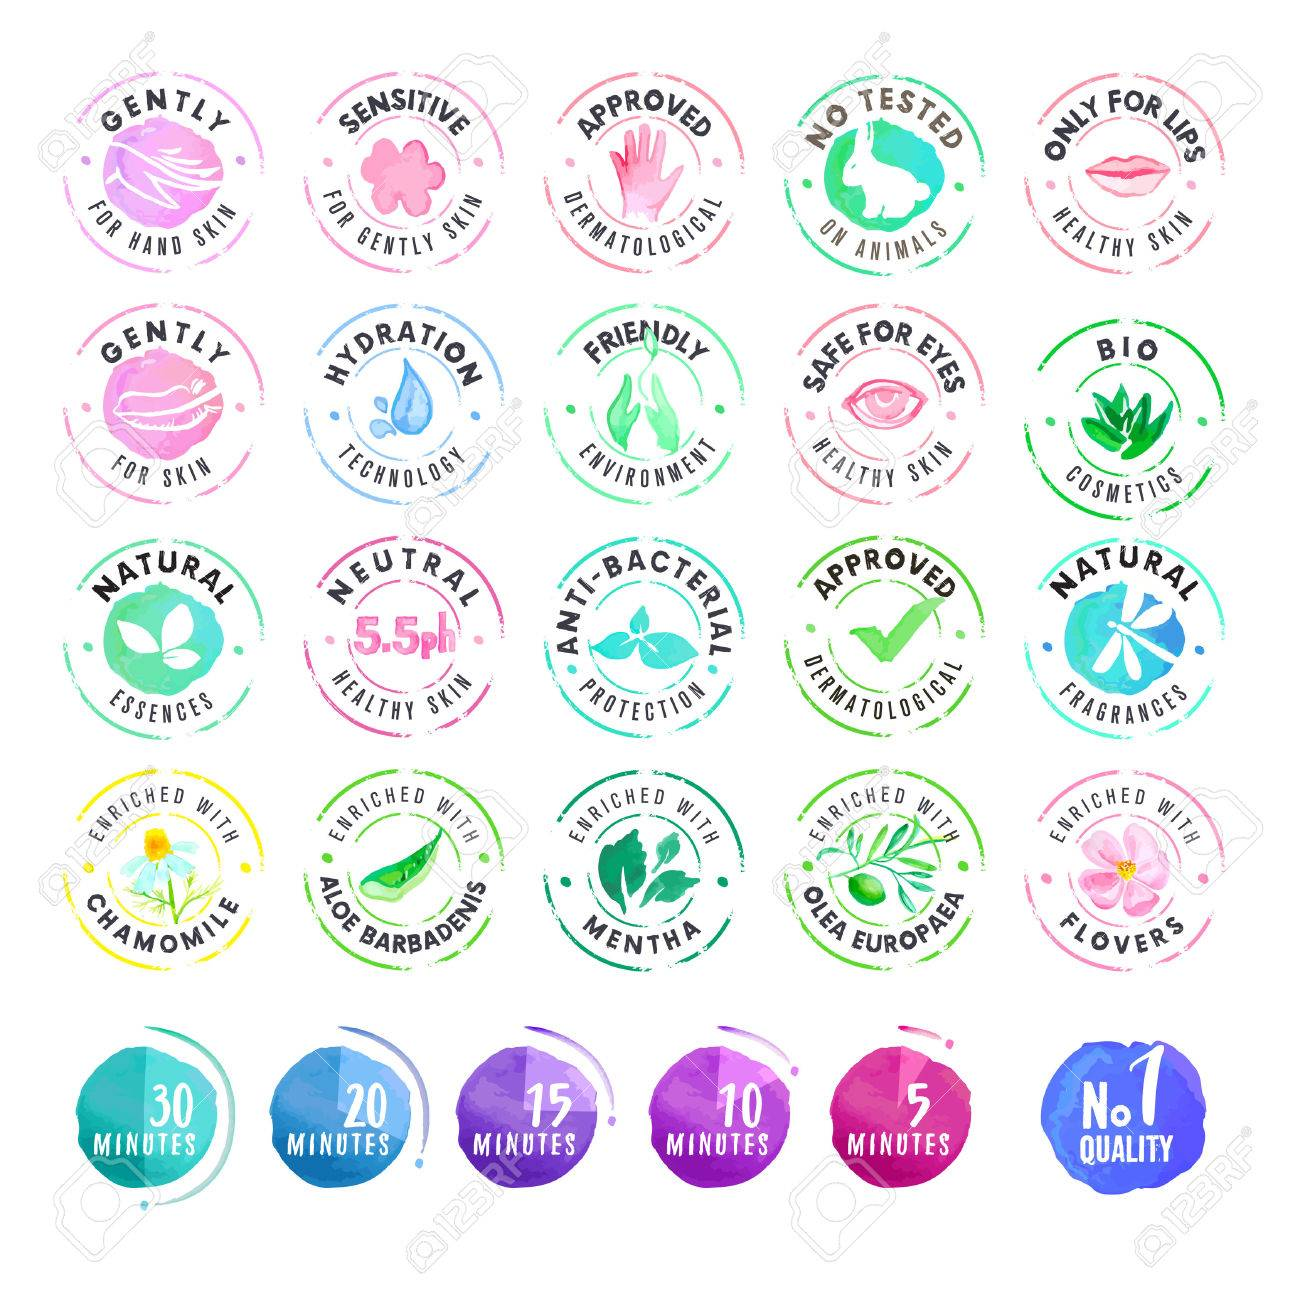 Set of hand drawn watercolor stickers for cosmetics vector illustrations for graphic and web design